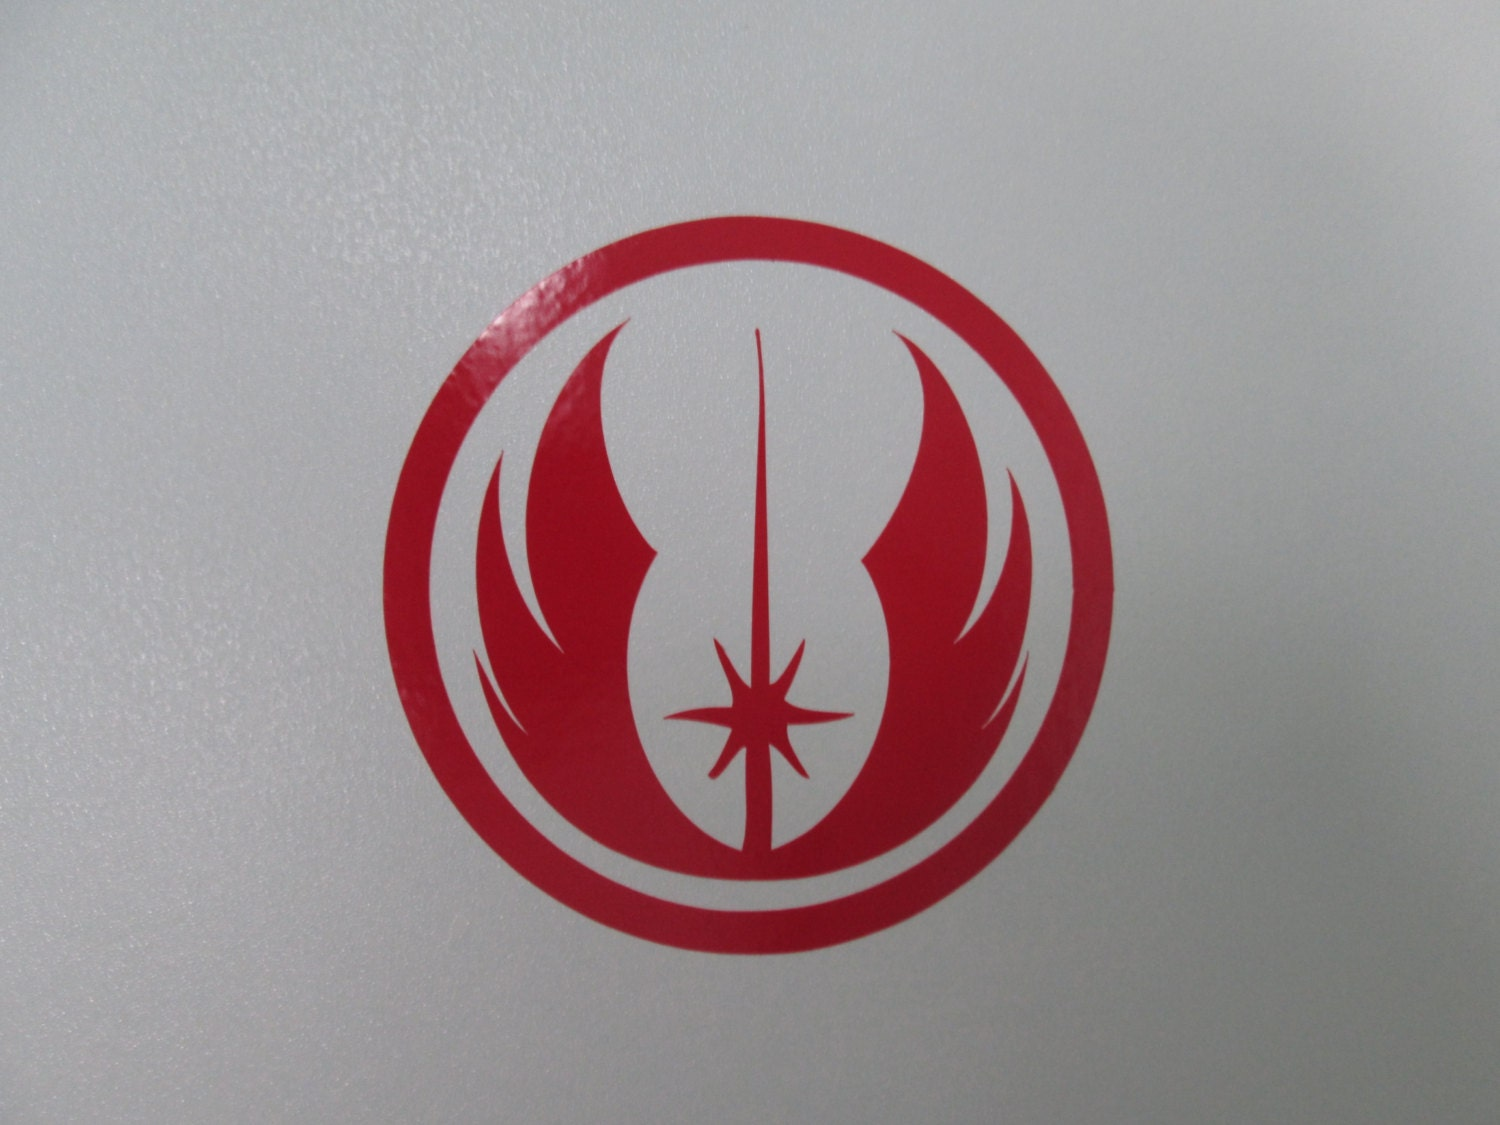 Star Wars Jedi Order Symbol Decal Sticker Several Sizes And